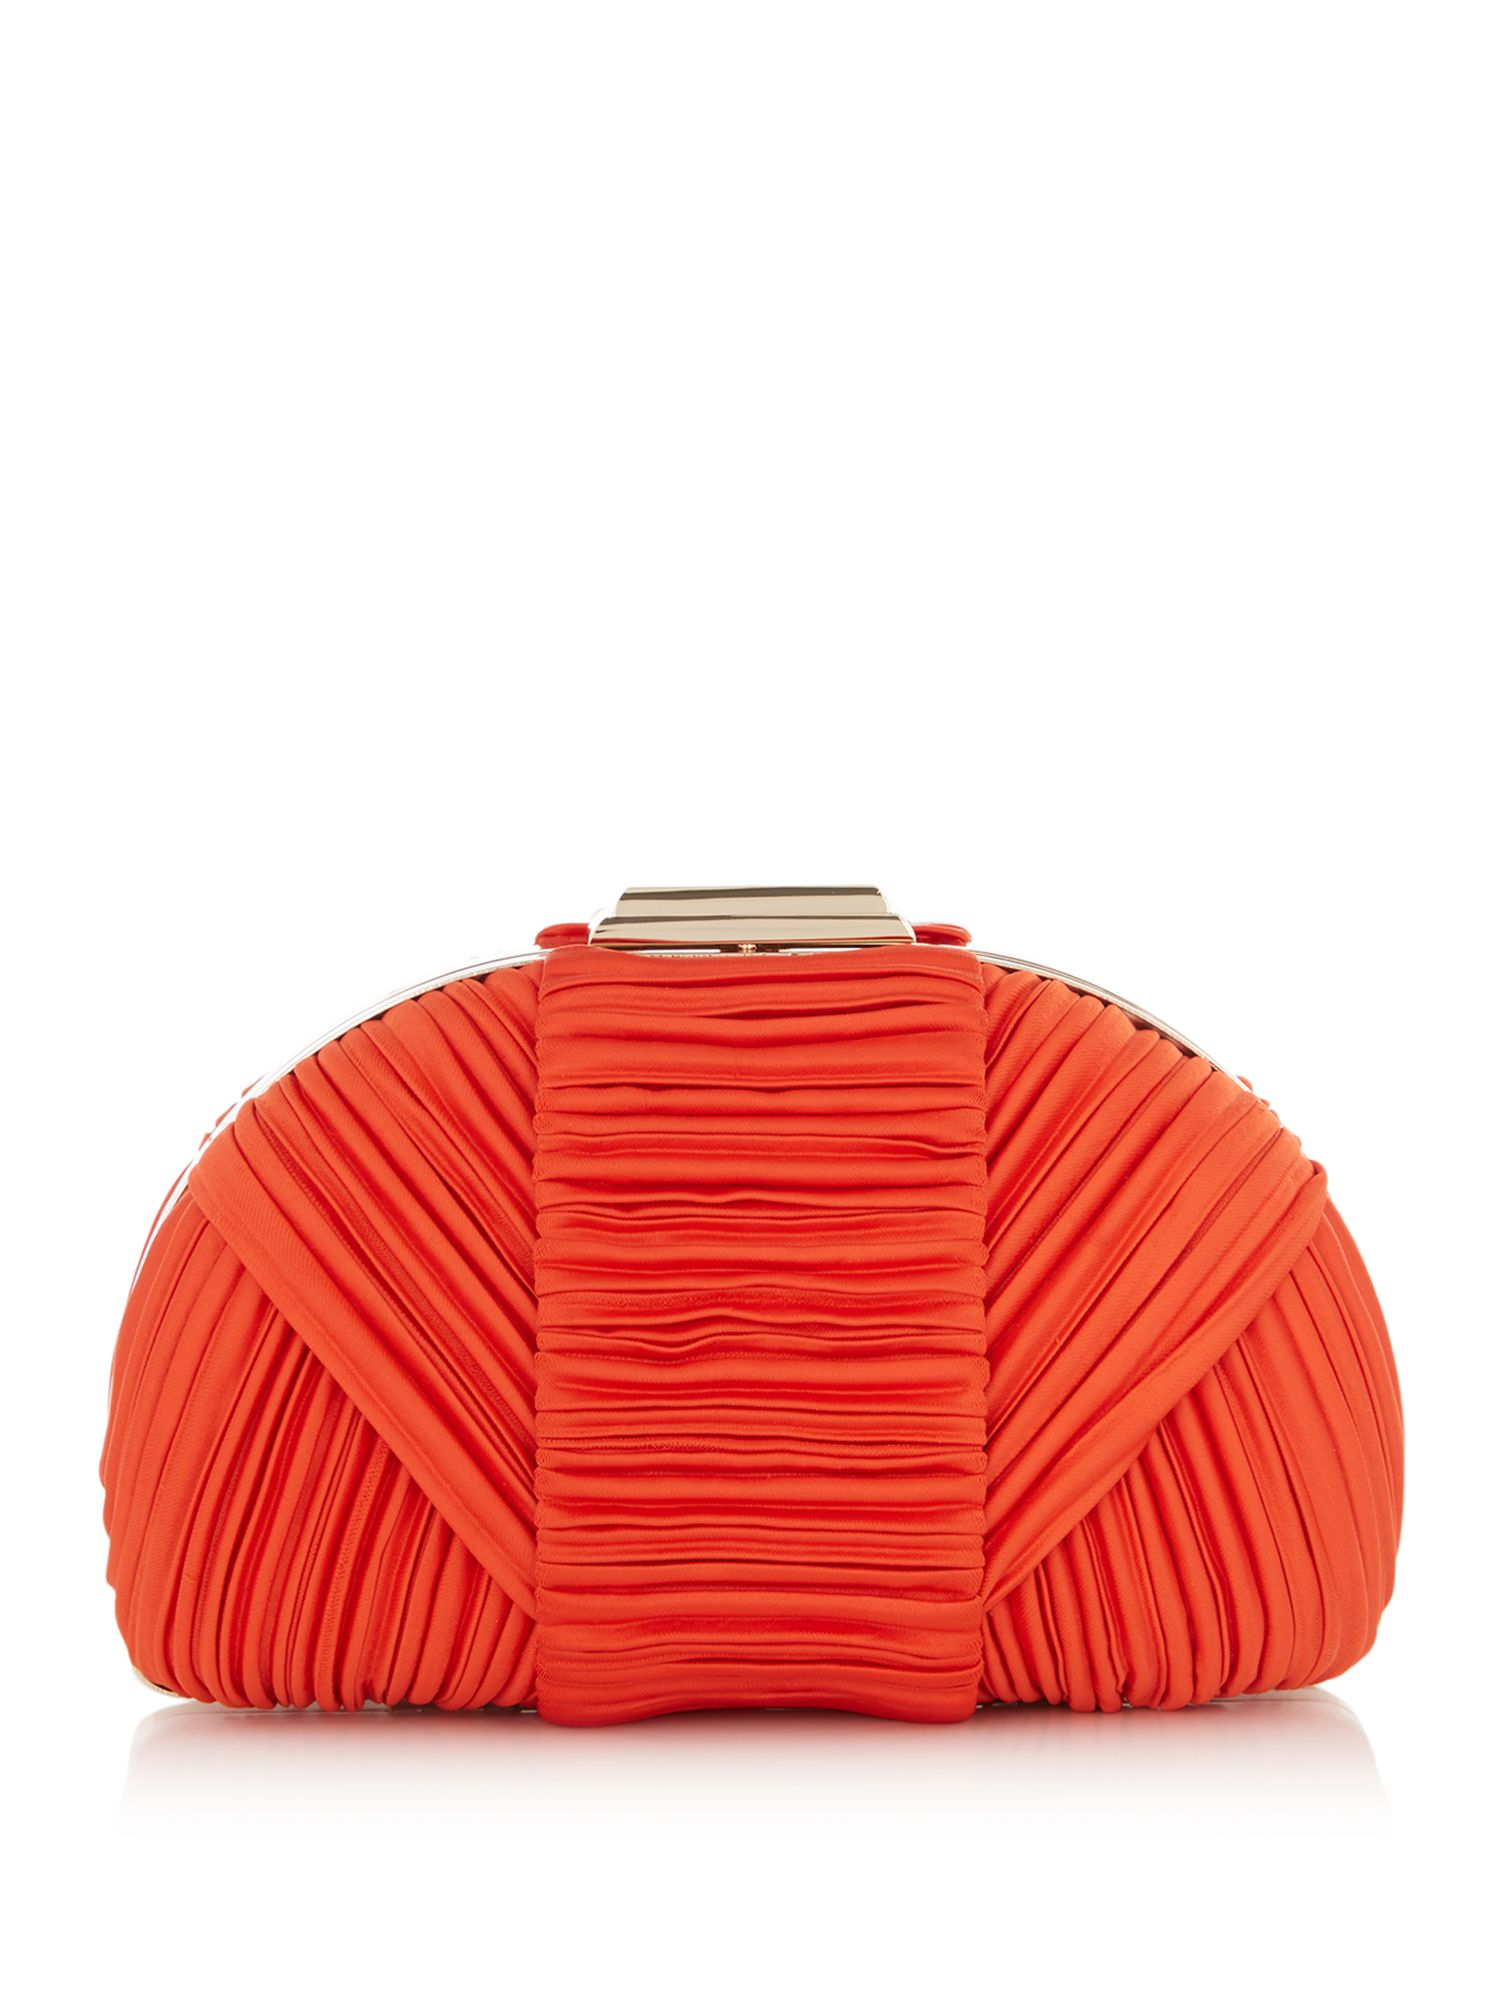 ISSA Cara dome pleated clutch, Coral